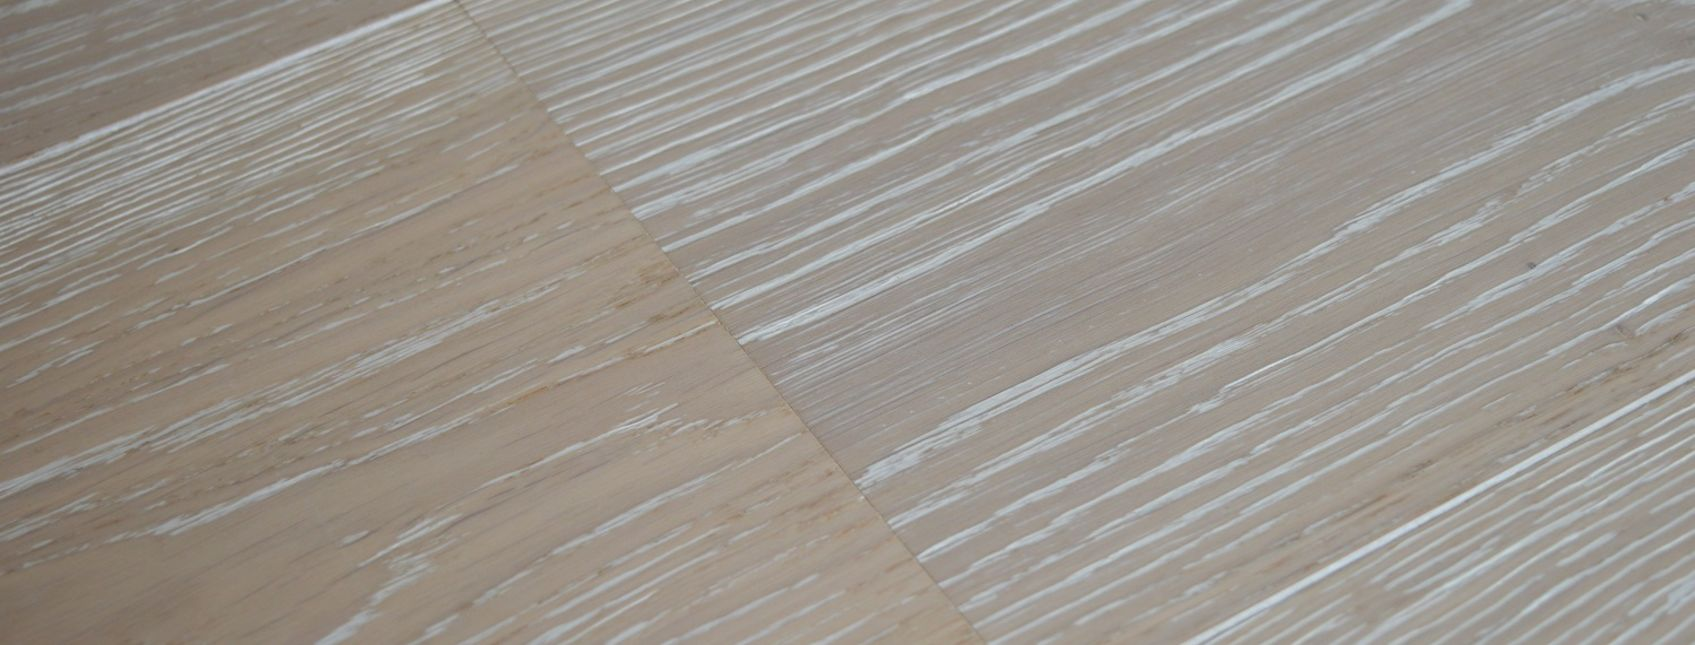 'Coastal' Limed Effect Flooring